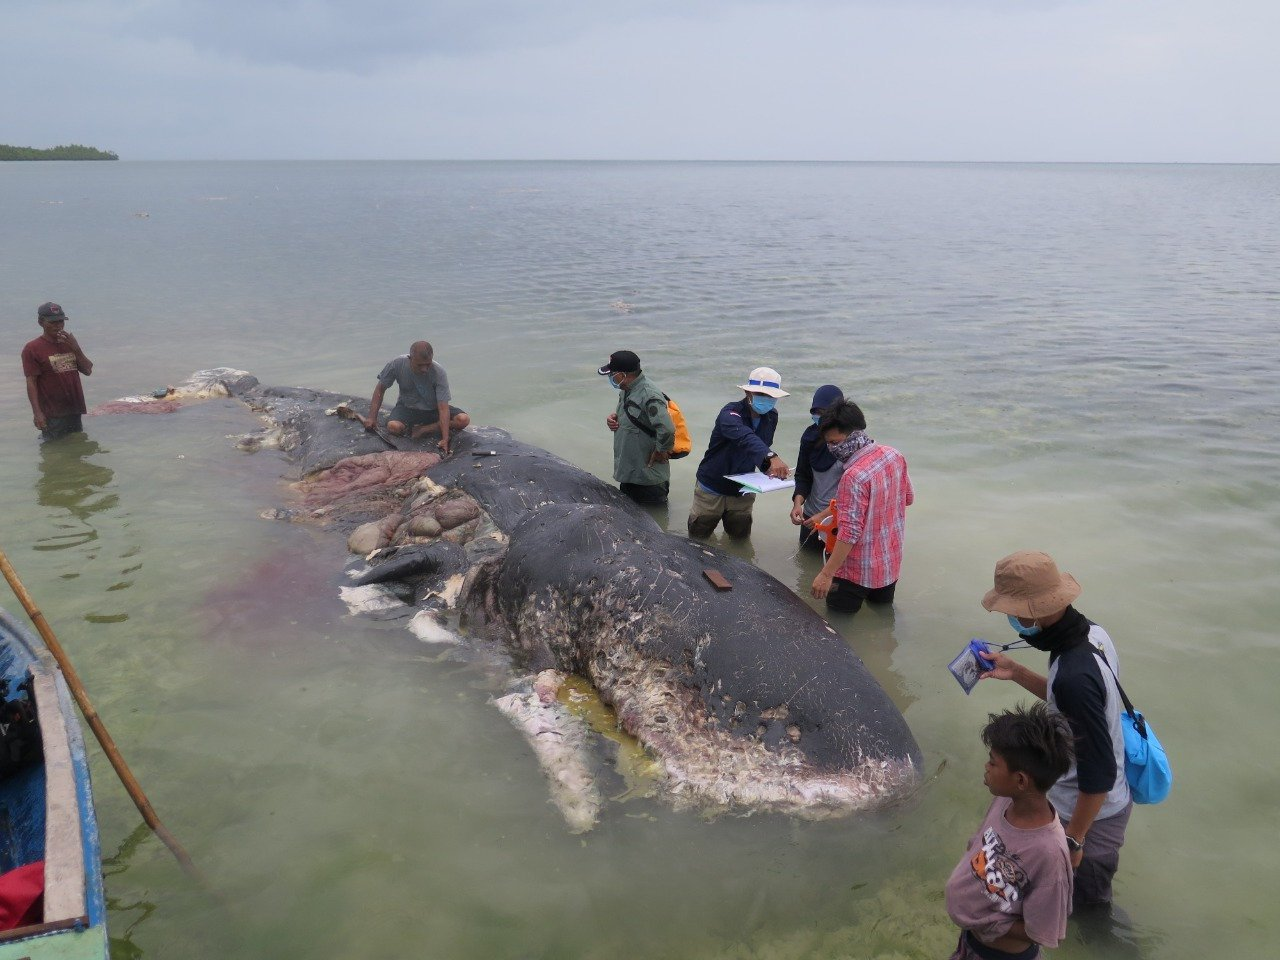 A stranded whale with plastic in his belly is seen in Wakatobi, Southeast Sulawesi, Indonesia, November 19, 2018 in this picture obtained from social media. KARTIKA SUMOLANG/via REUTERS THIS IMAGE HAS BEEN SUPPLIED BY A THIRD PARTY. MANDATORY CREDIT.